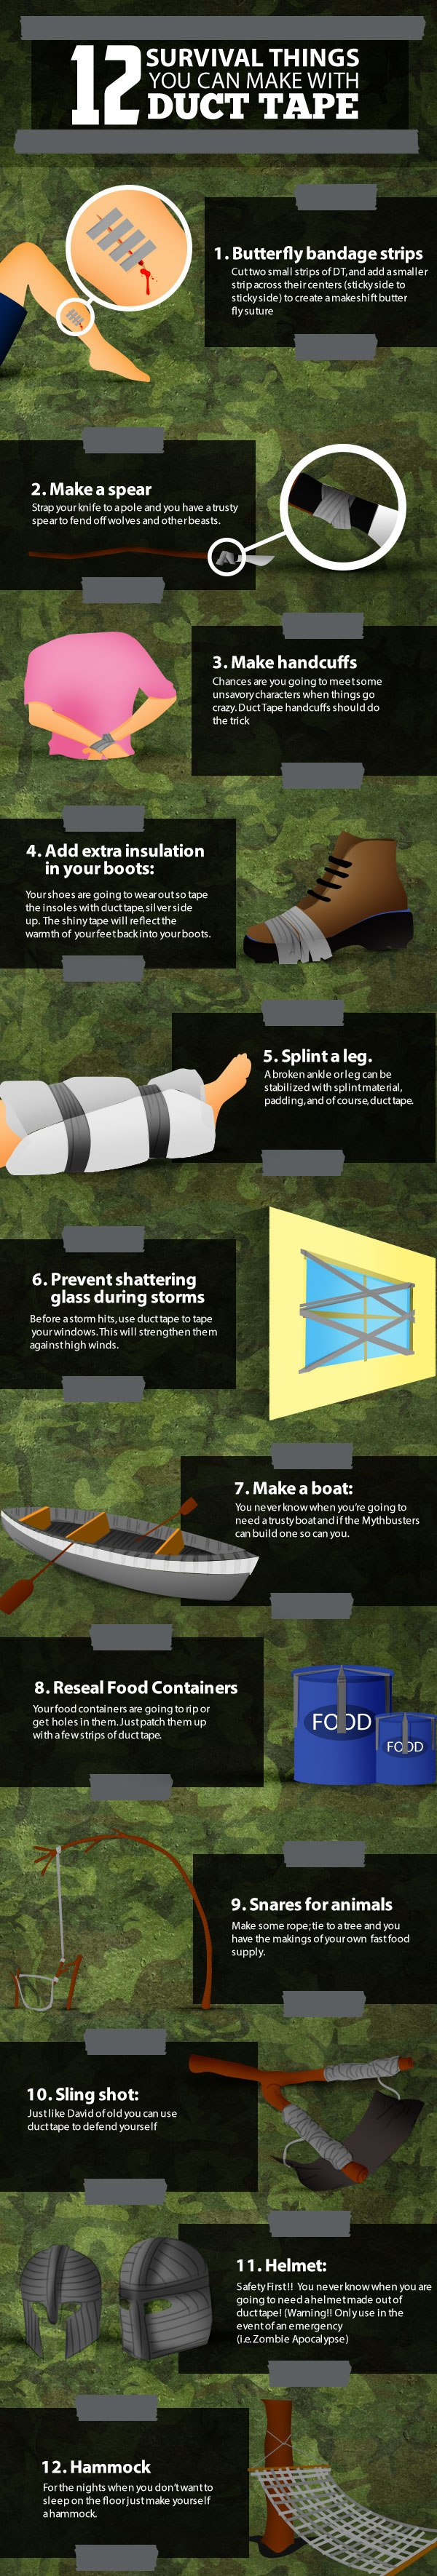 duct tape for preppers infographic